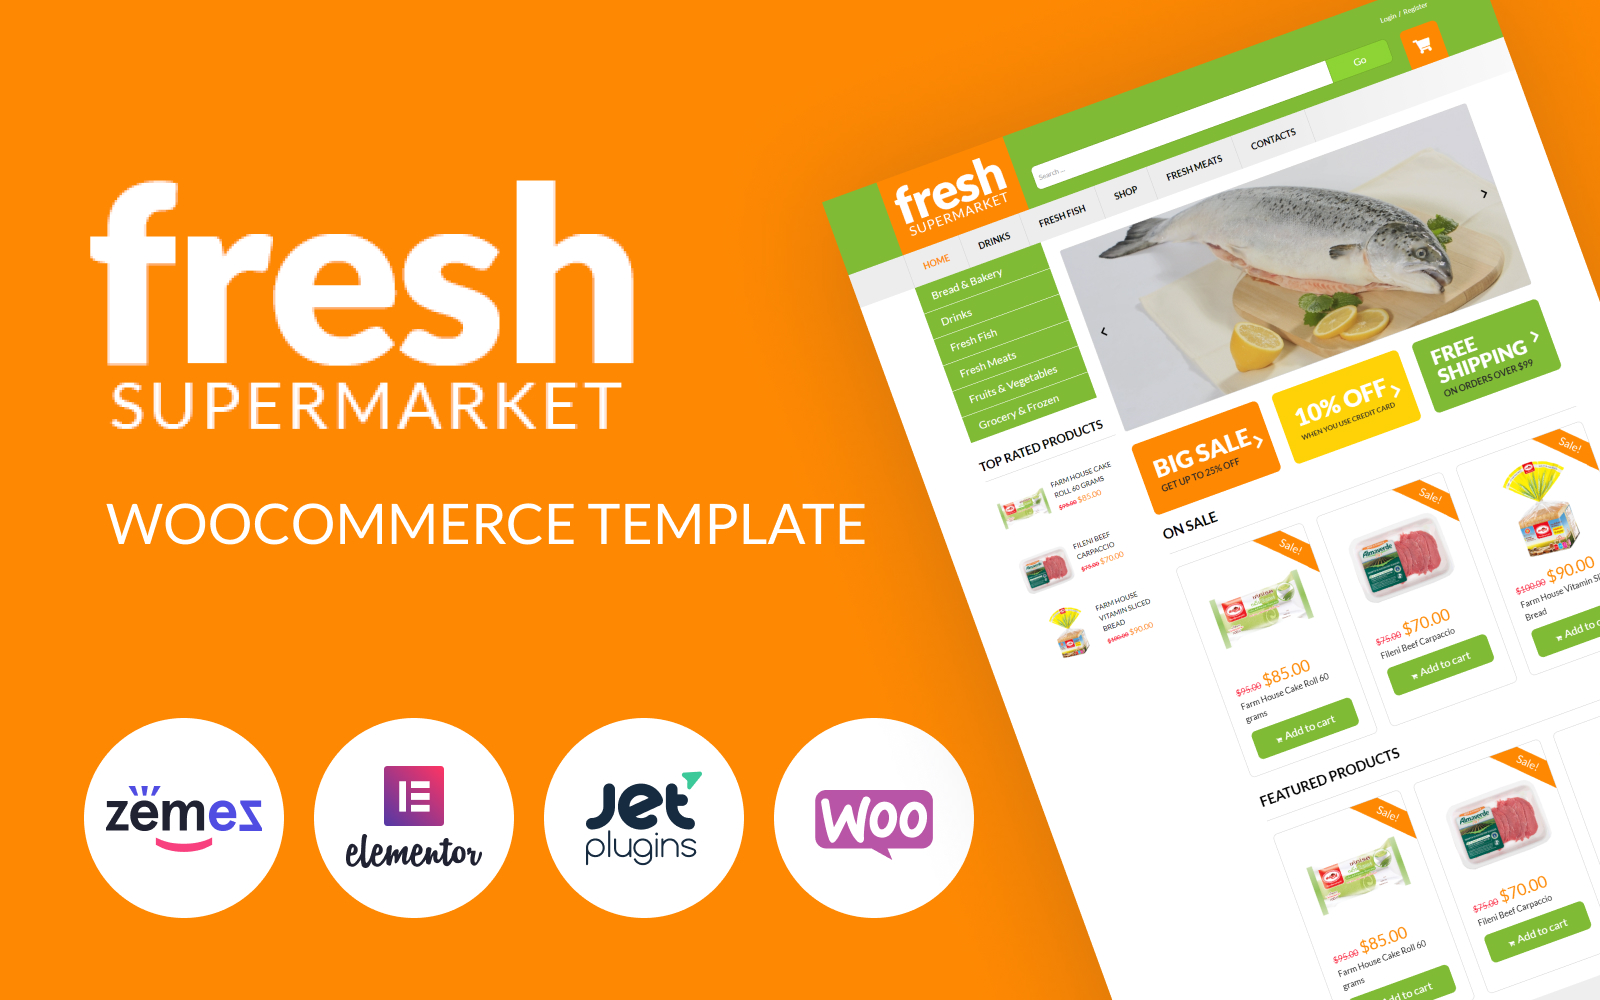 """Fresh Fresh -  Supermarket woocommerce template for easy sales"" 响应式WooCommerce模板 #51254"